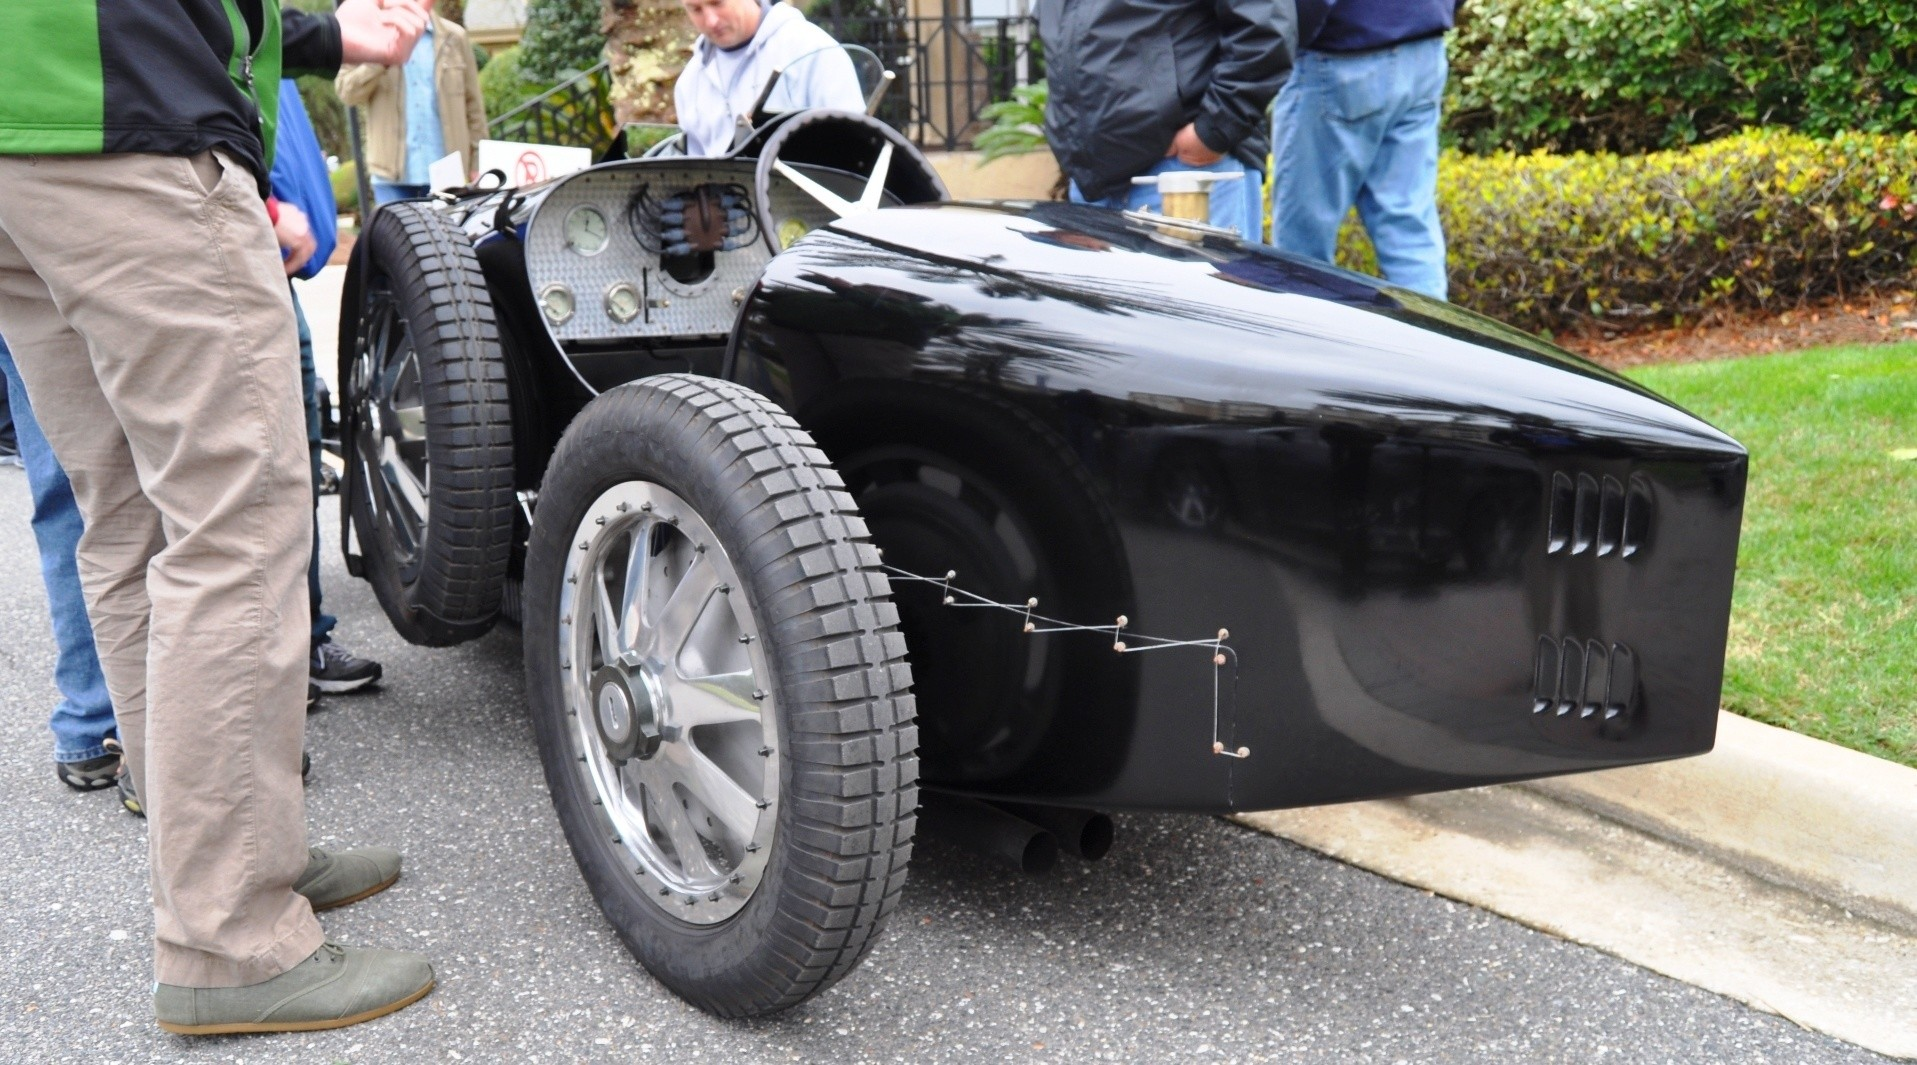 PurSang Argentina Shows Innovative Marketing with Street-Parked 1920s Bugatti GP Car14